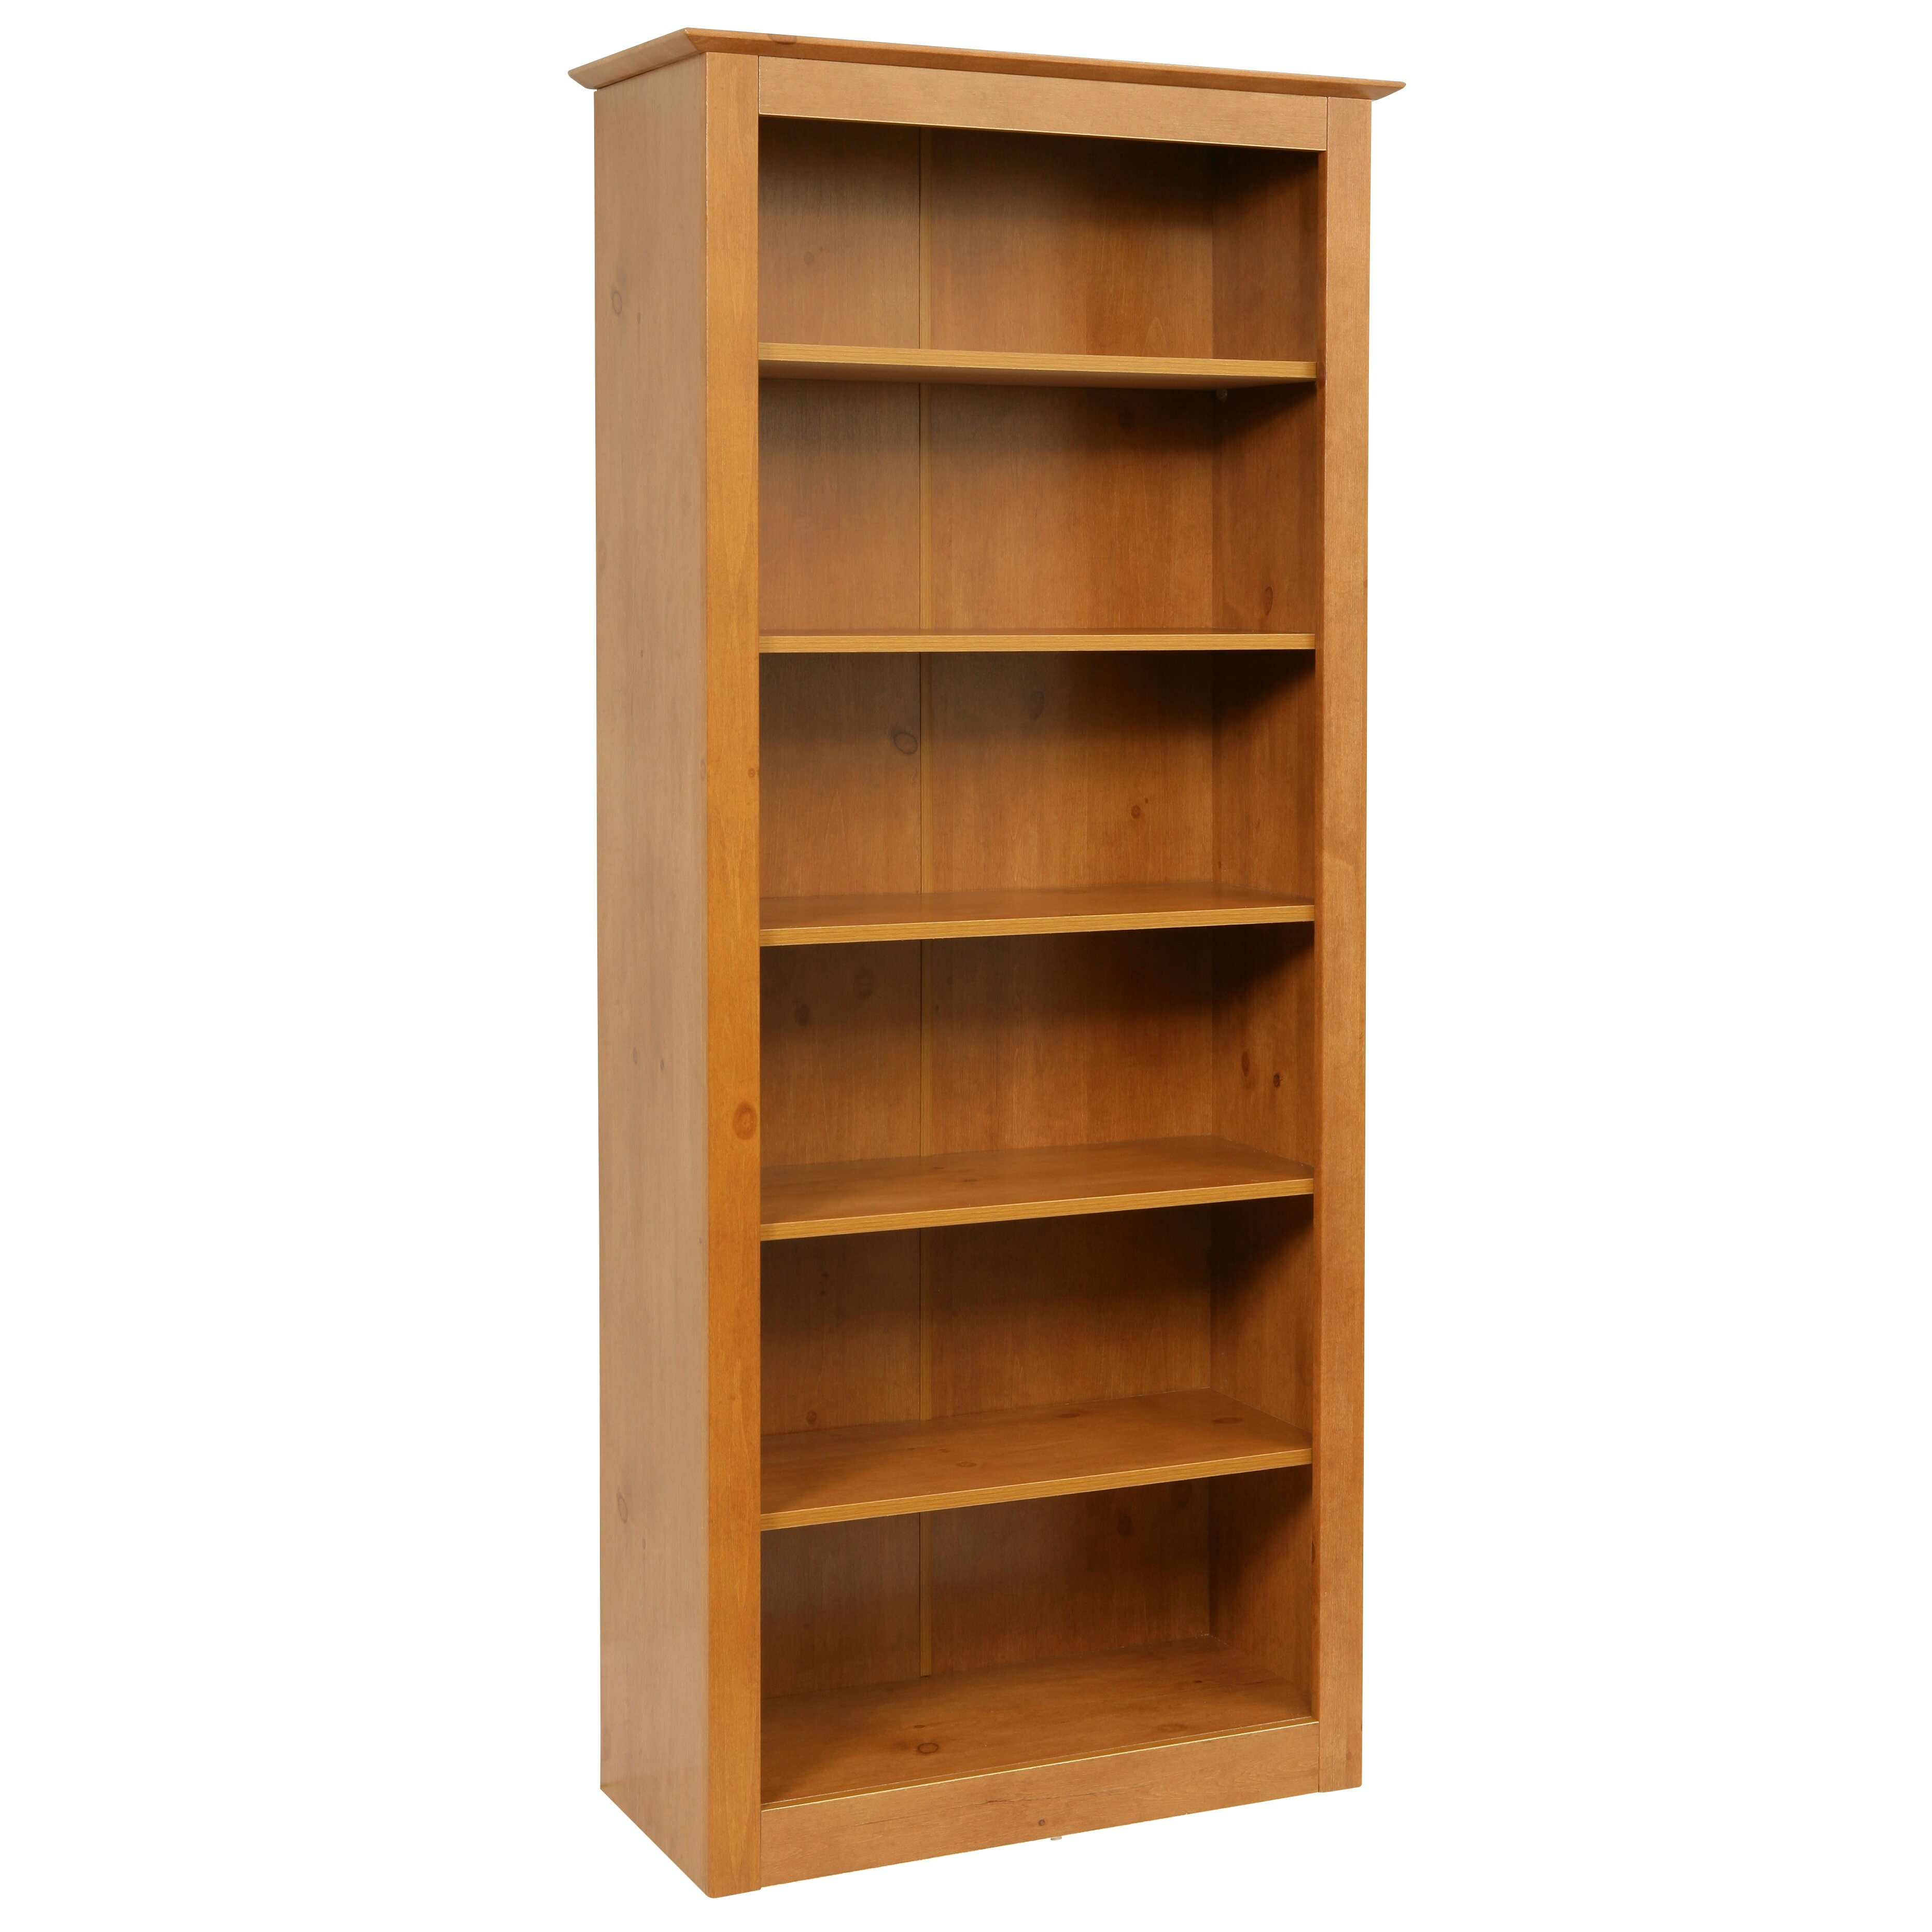 #3D1D09 Home & Haus Tall Wide 180cm Standard Bookcase & Reviews Wayfair UK with 3726x3726 px of Brand New 23 Inch Wide Bookcase 37263726 pic @ avoidforclosure.info